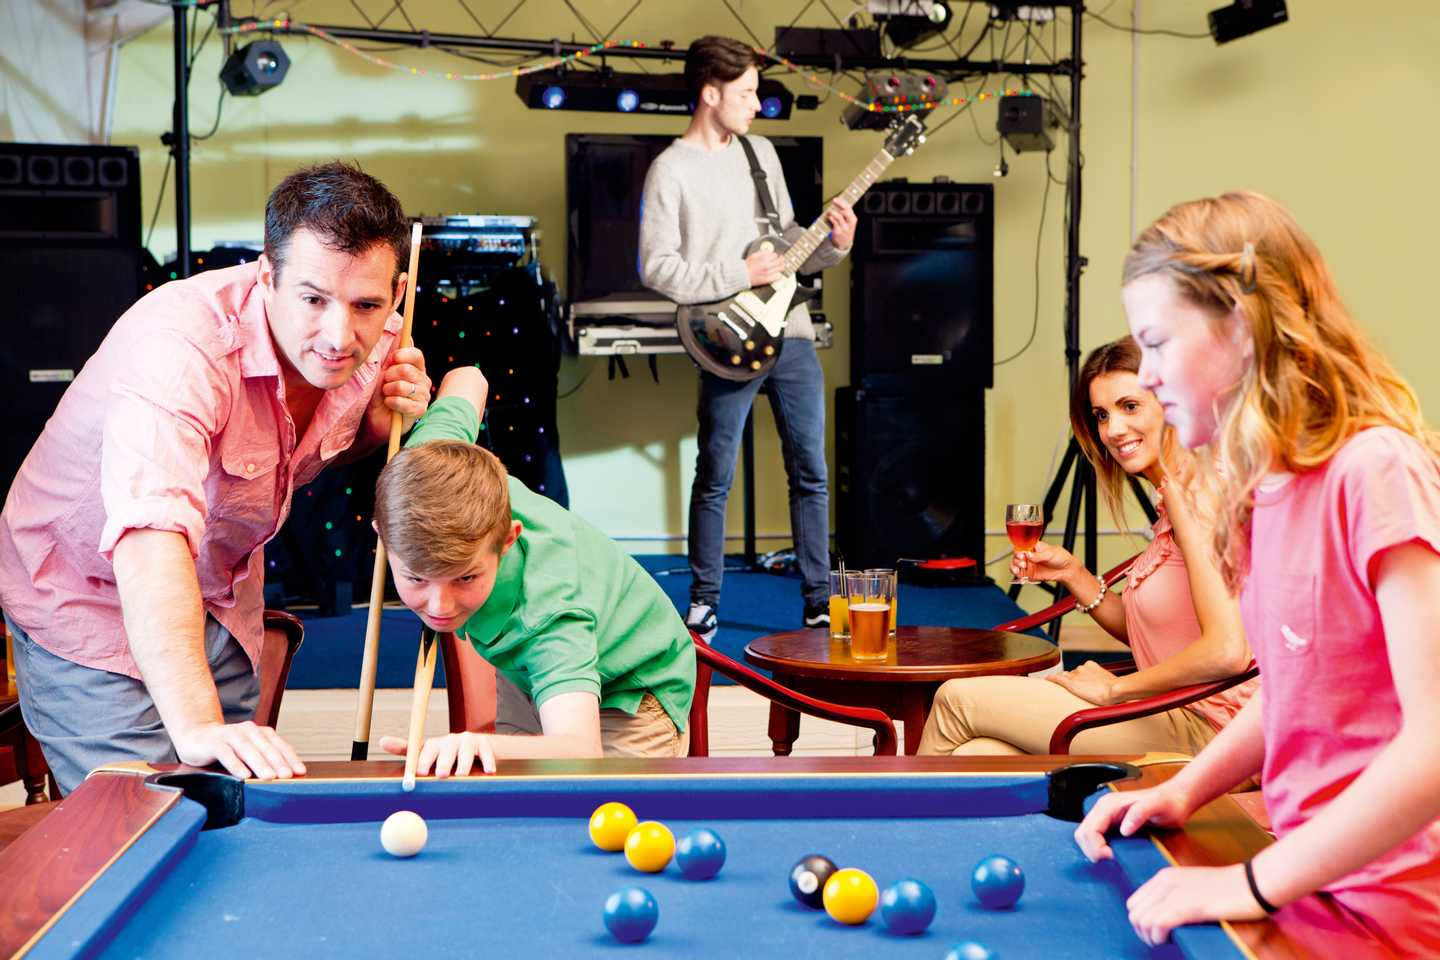 A family playing pool